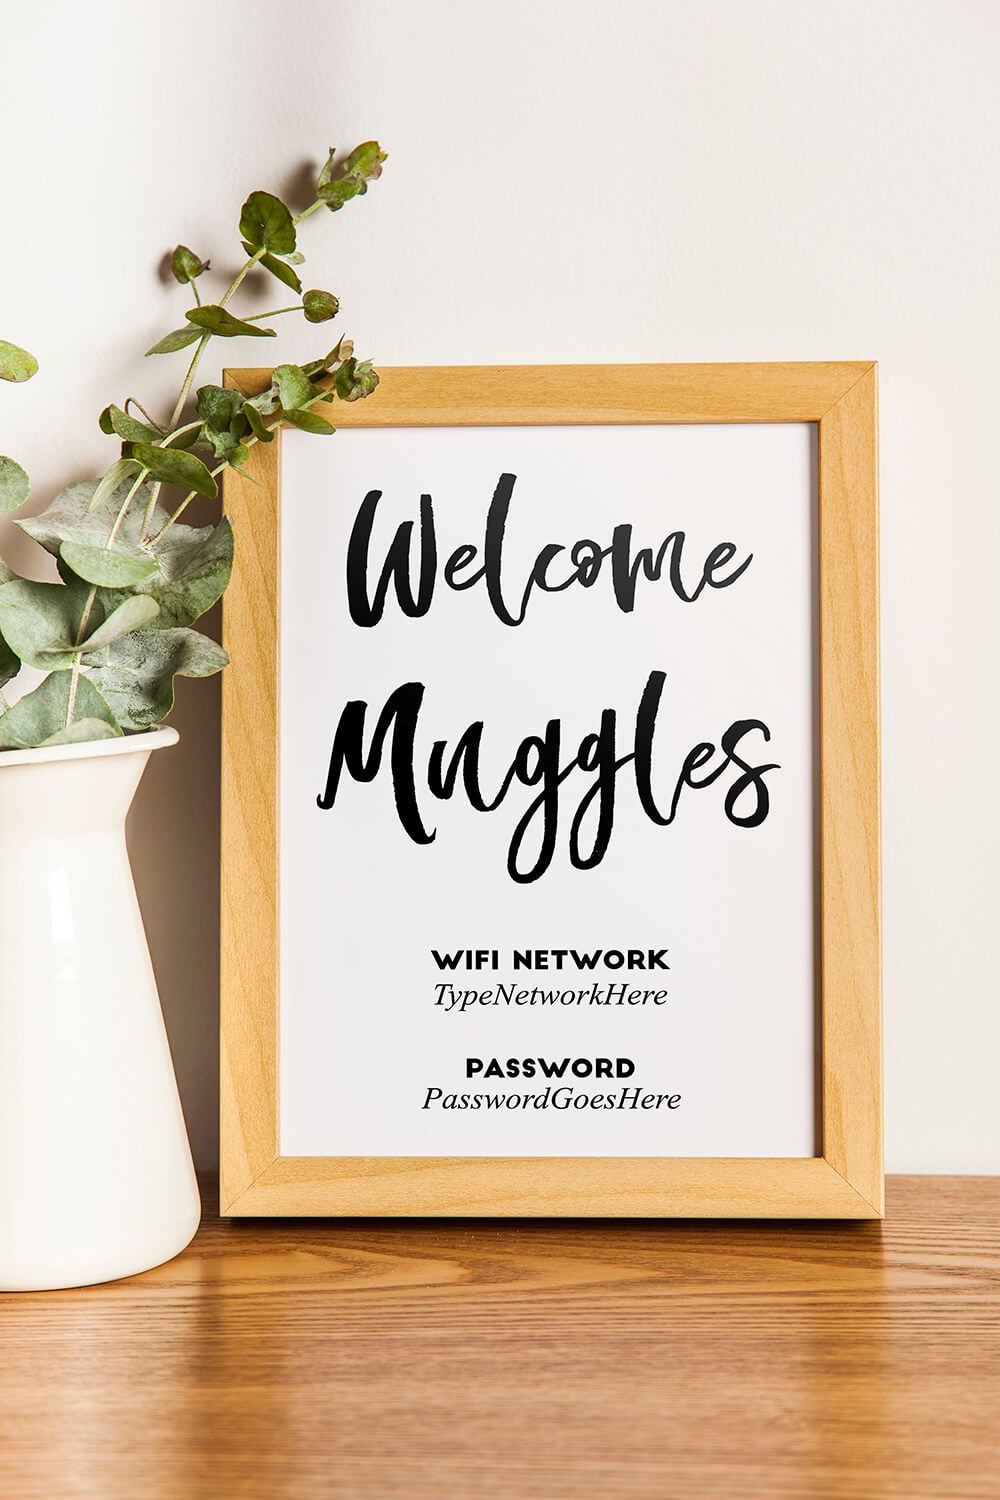 photograph about Wifi Password Printable Free called Welcome muggles harry potter cost-free printable wifi pword